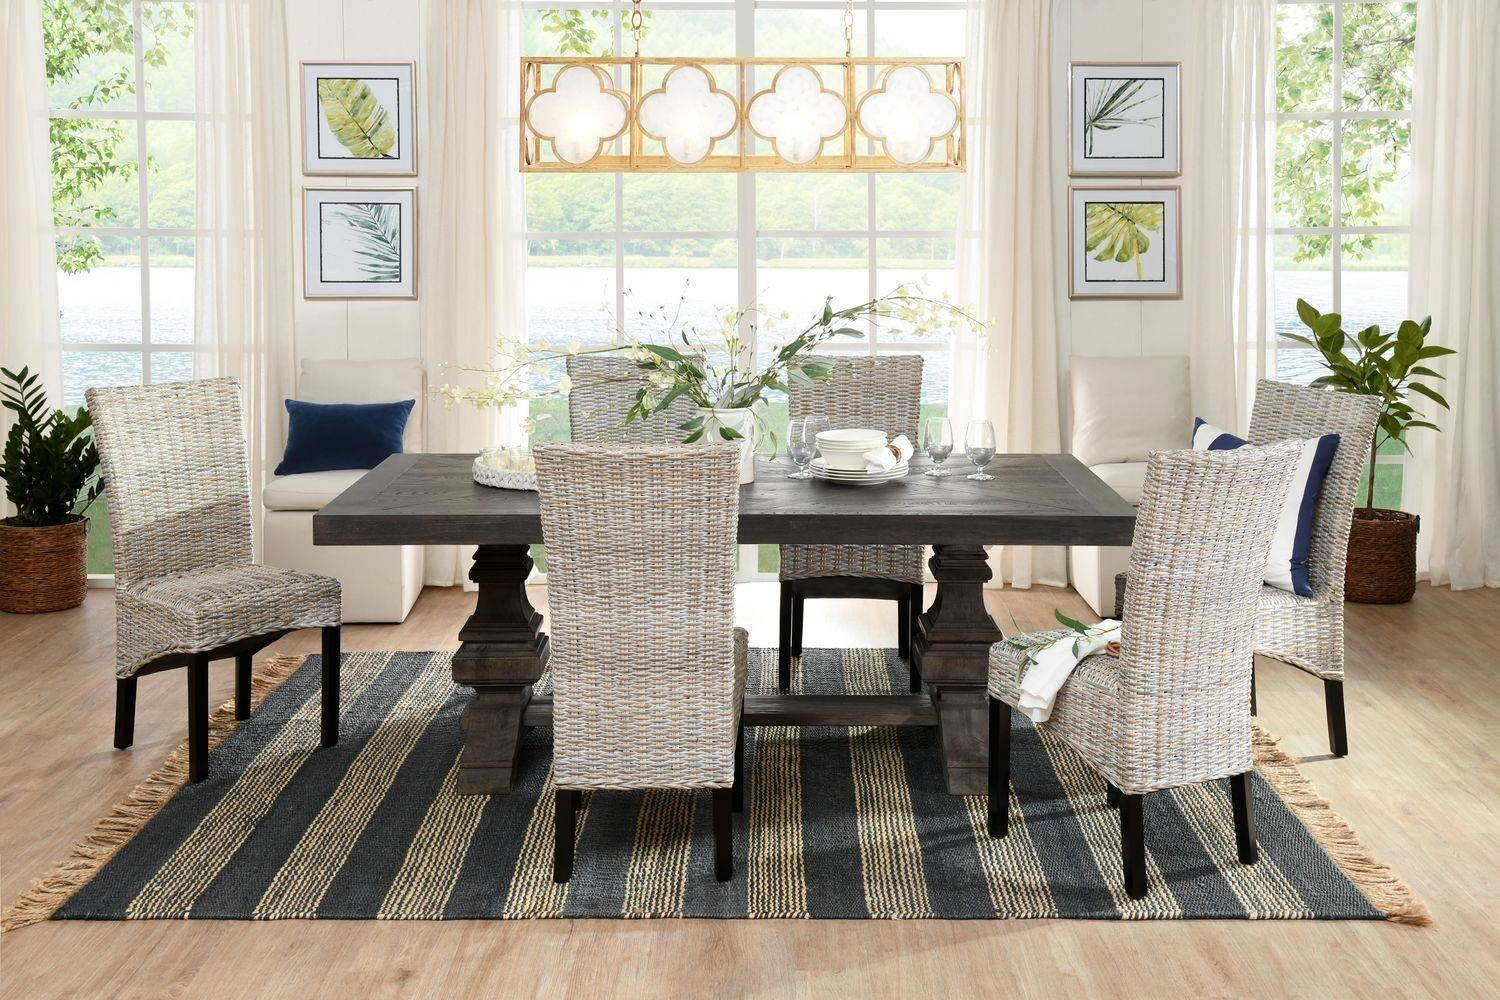 Magnificent Dining Room Chairs For Rooms Table Sets Big Lots within size 1500 X 1000